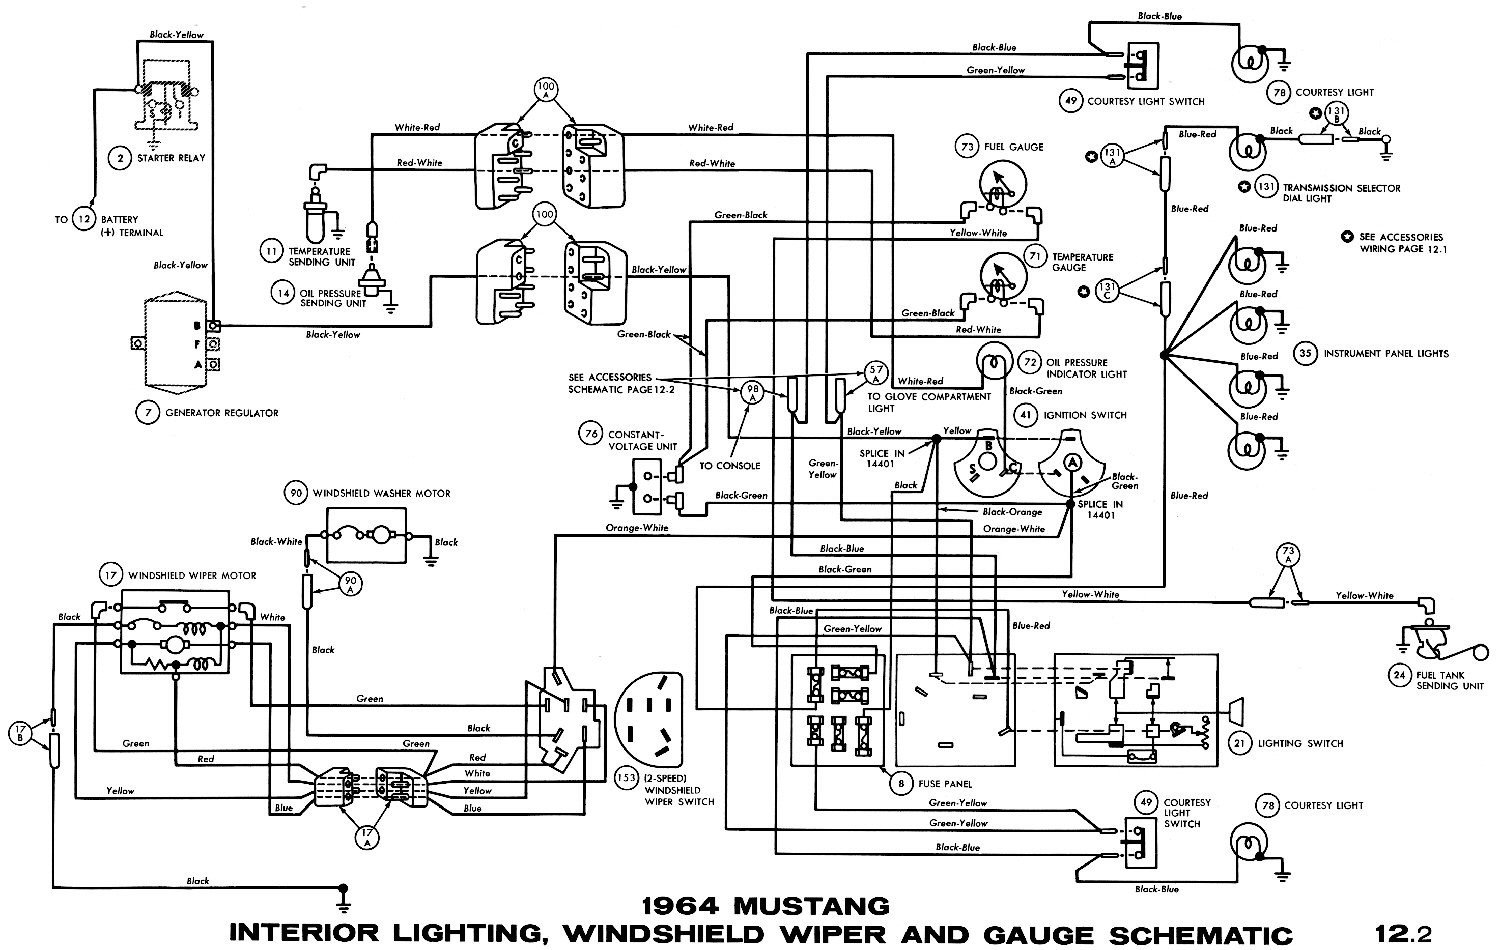 Mustang Ignition Switch Wiring Diagram Download